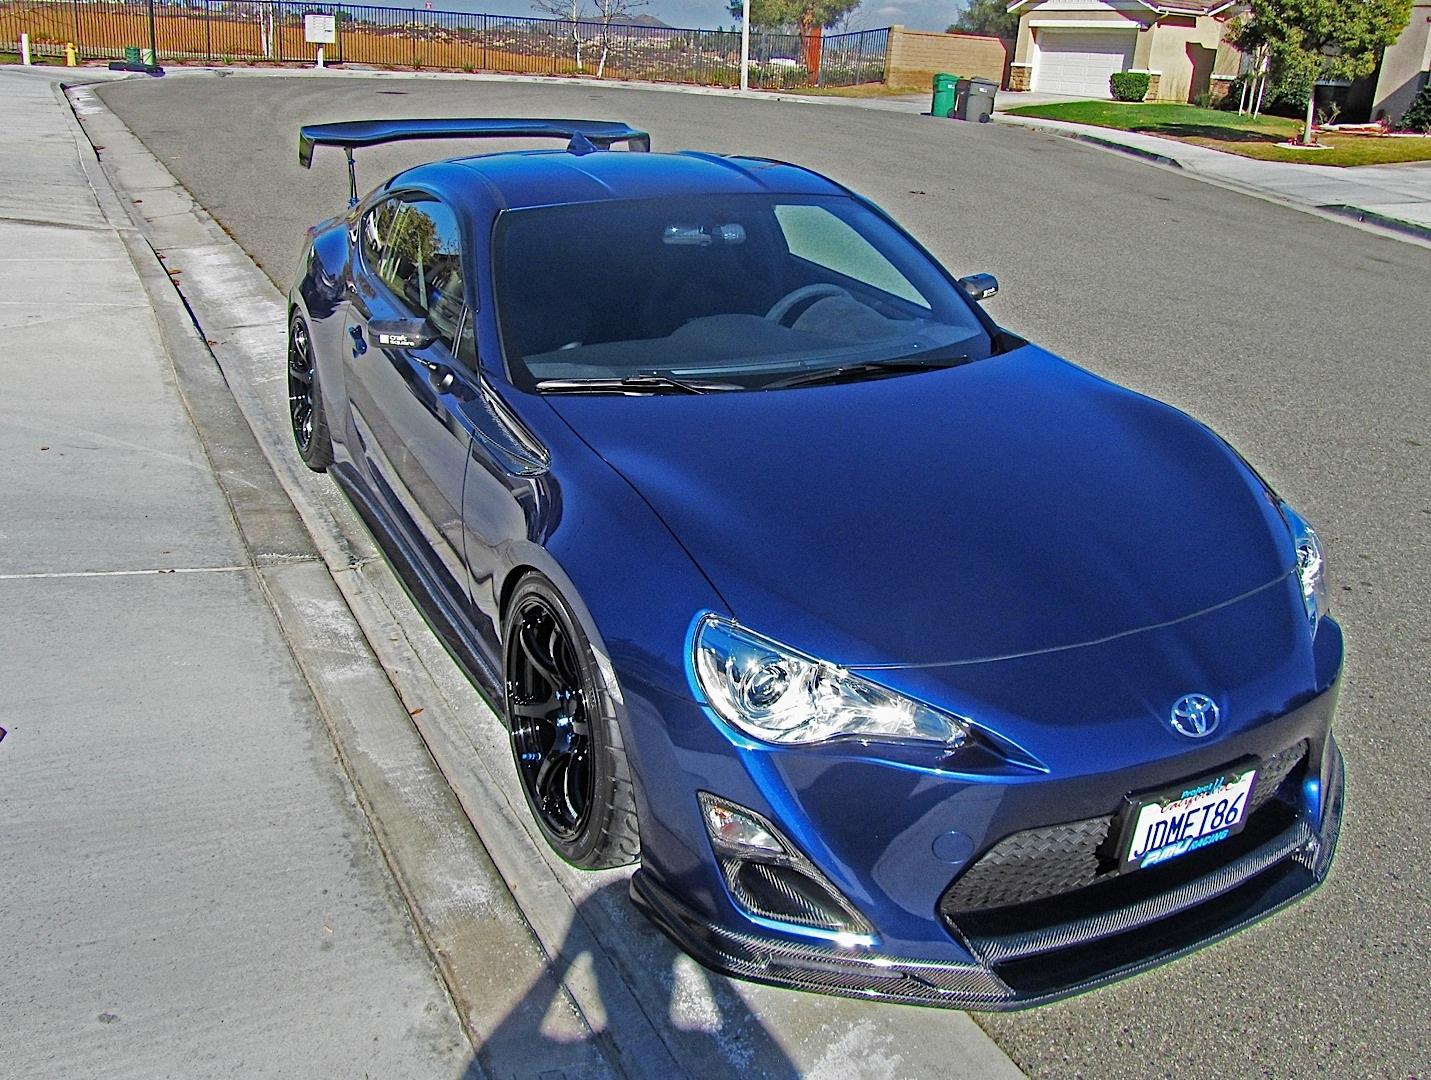 Widebody Toyota GT 86 by 326power Has Crazy Wheels and Low ... |Custom Toyota Gt86